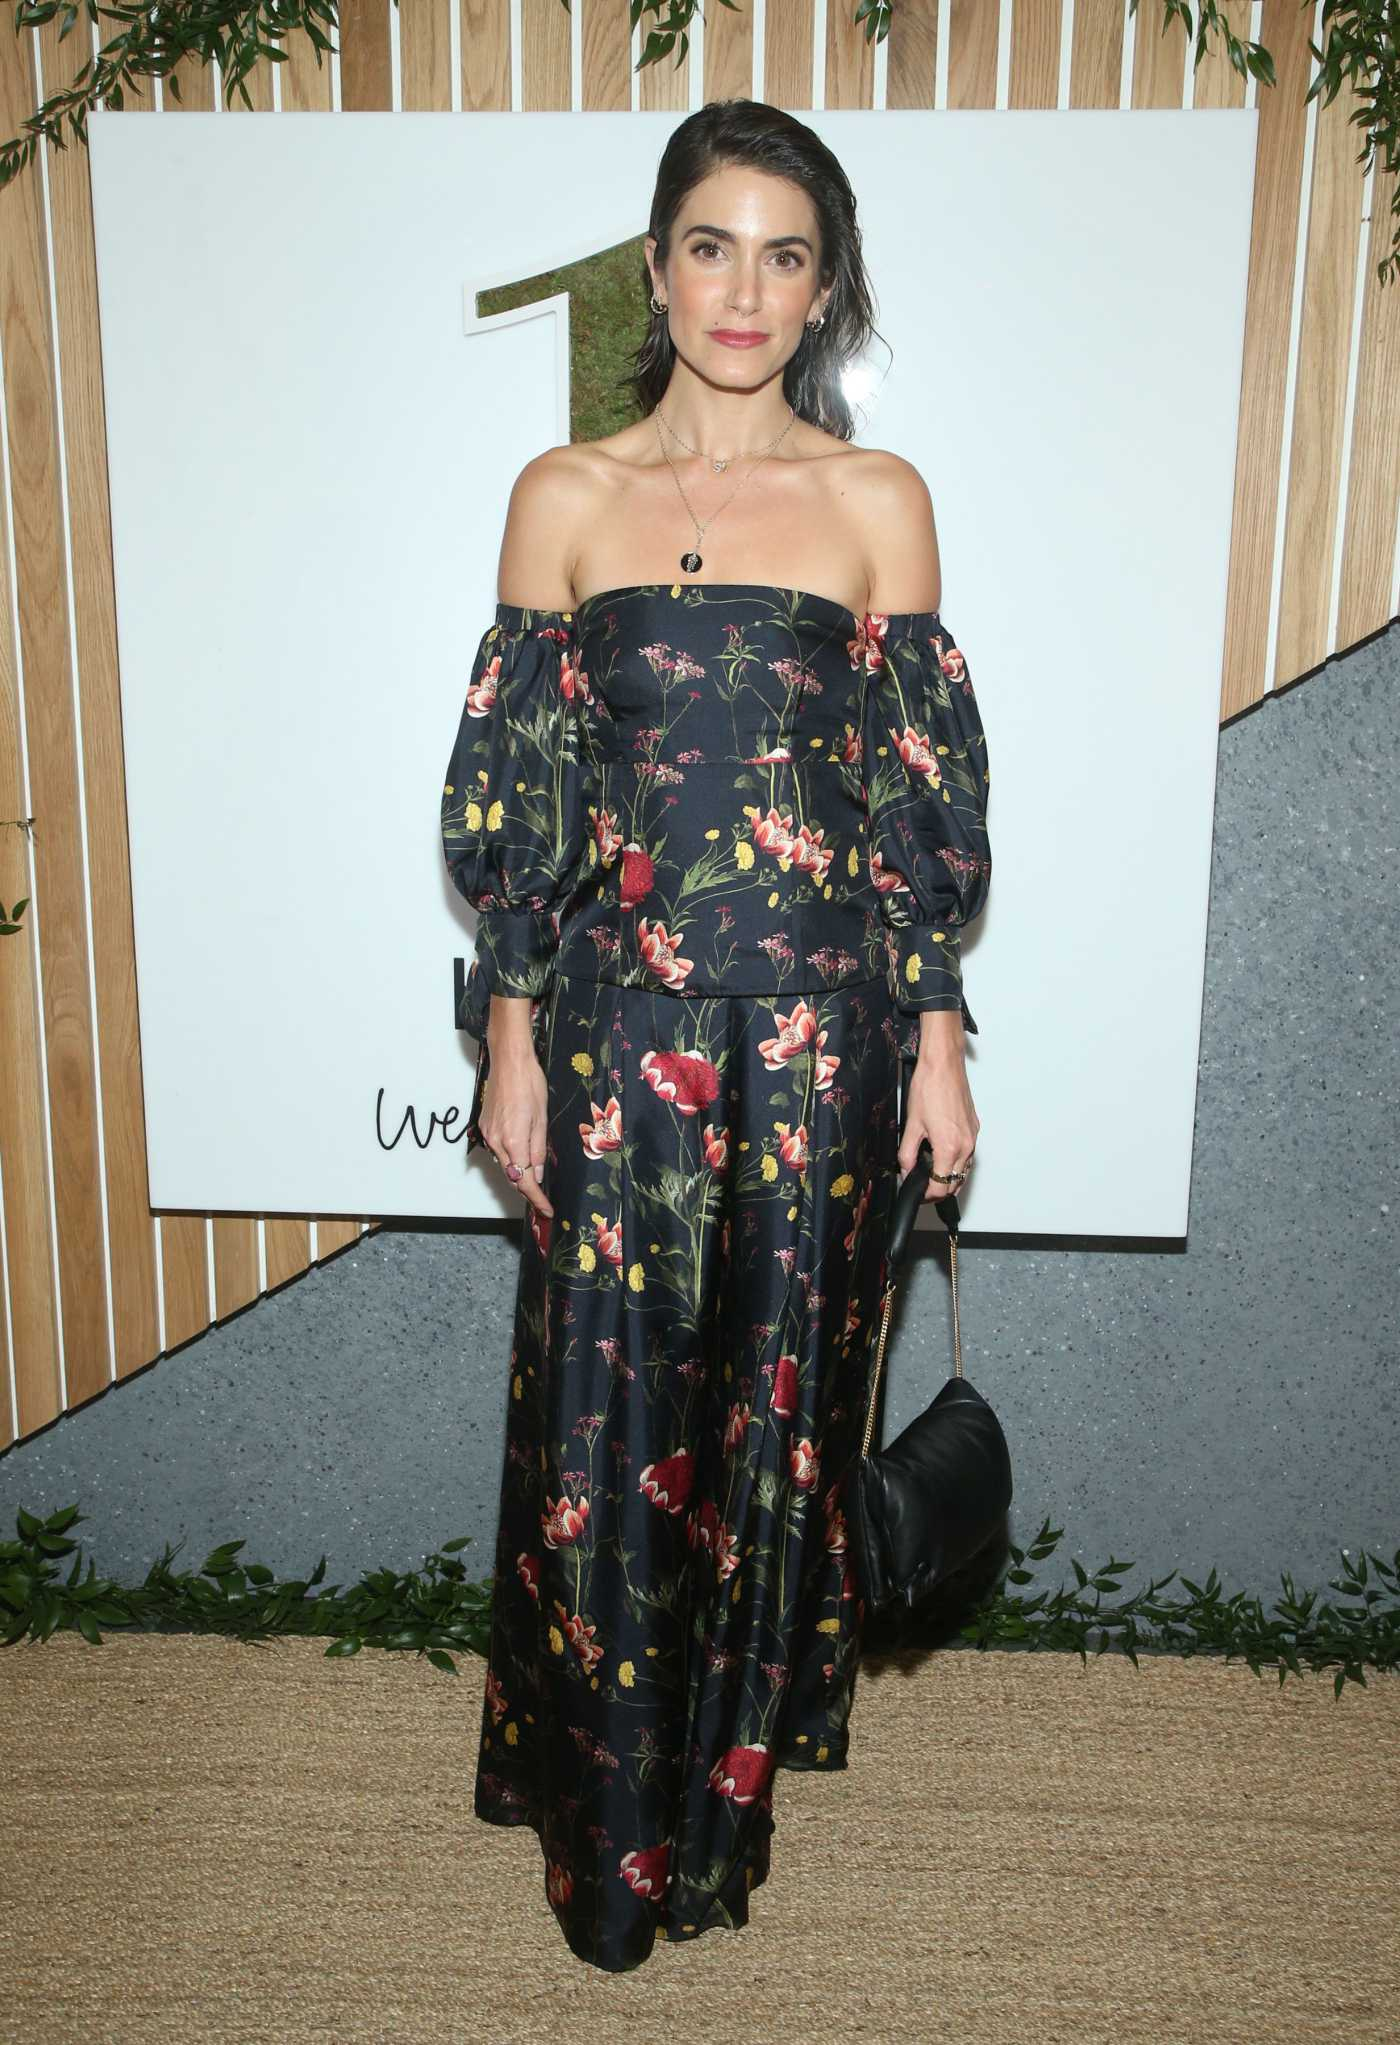 Nikki Reed Attends the 1 Hotel West Hollywood Opening in Los Angeles 11/05/2019